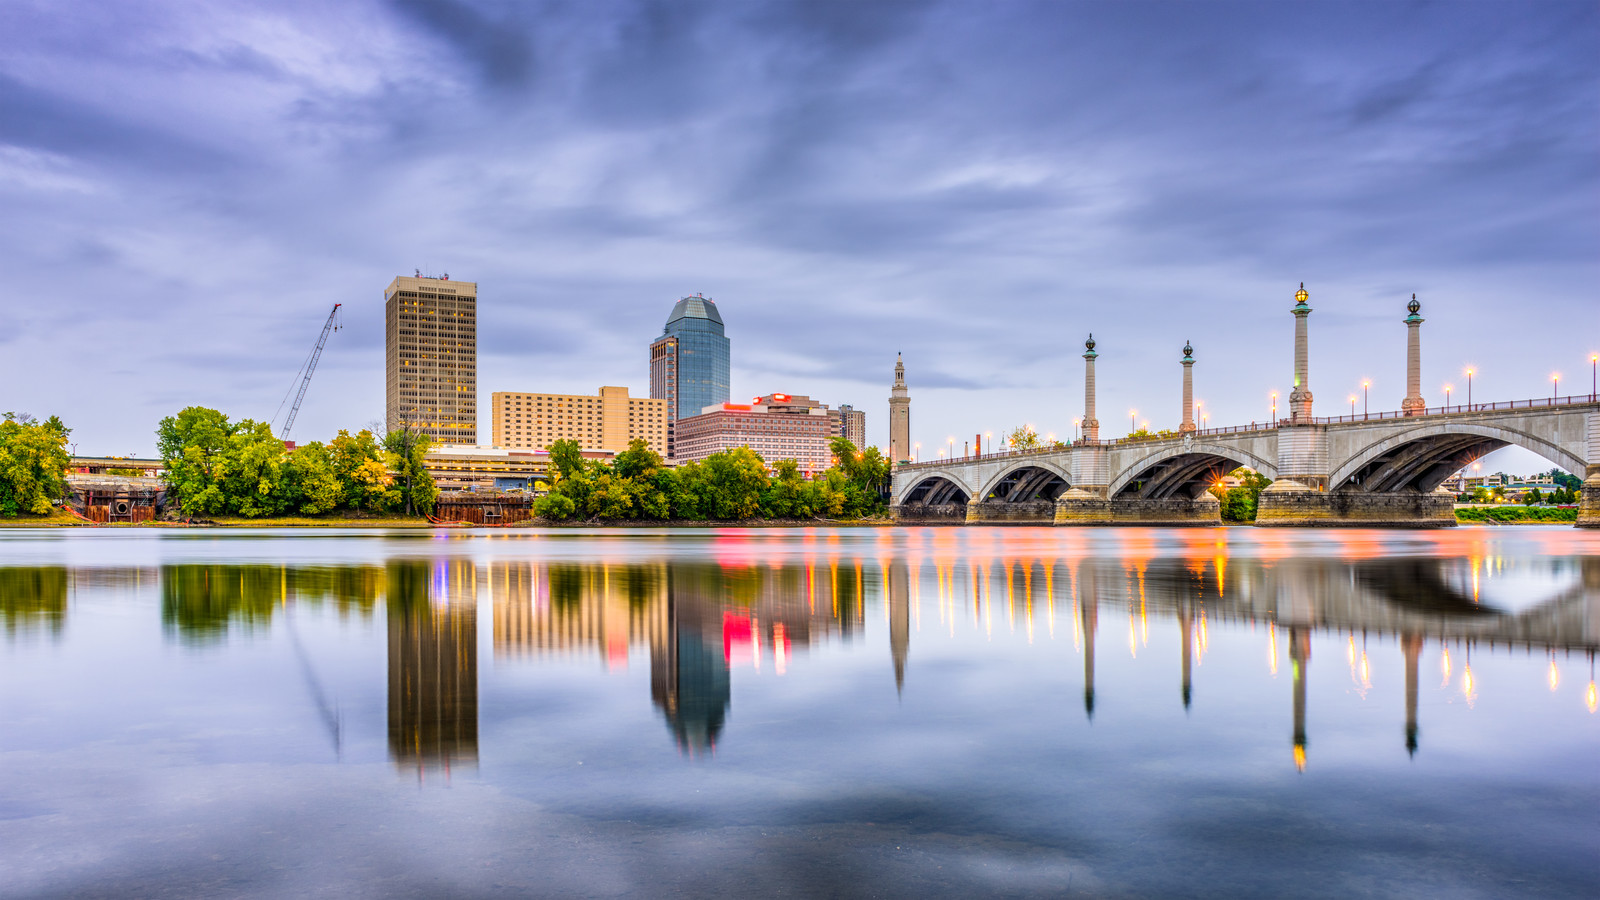 downtown skyline of Springfield, Massachusetts, photo take from across the Connecticut River in the evening with the lights and skyline reflecting off the water